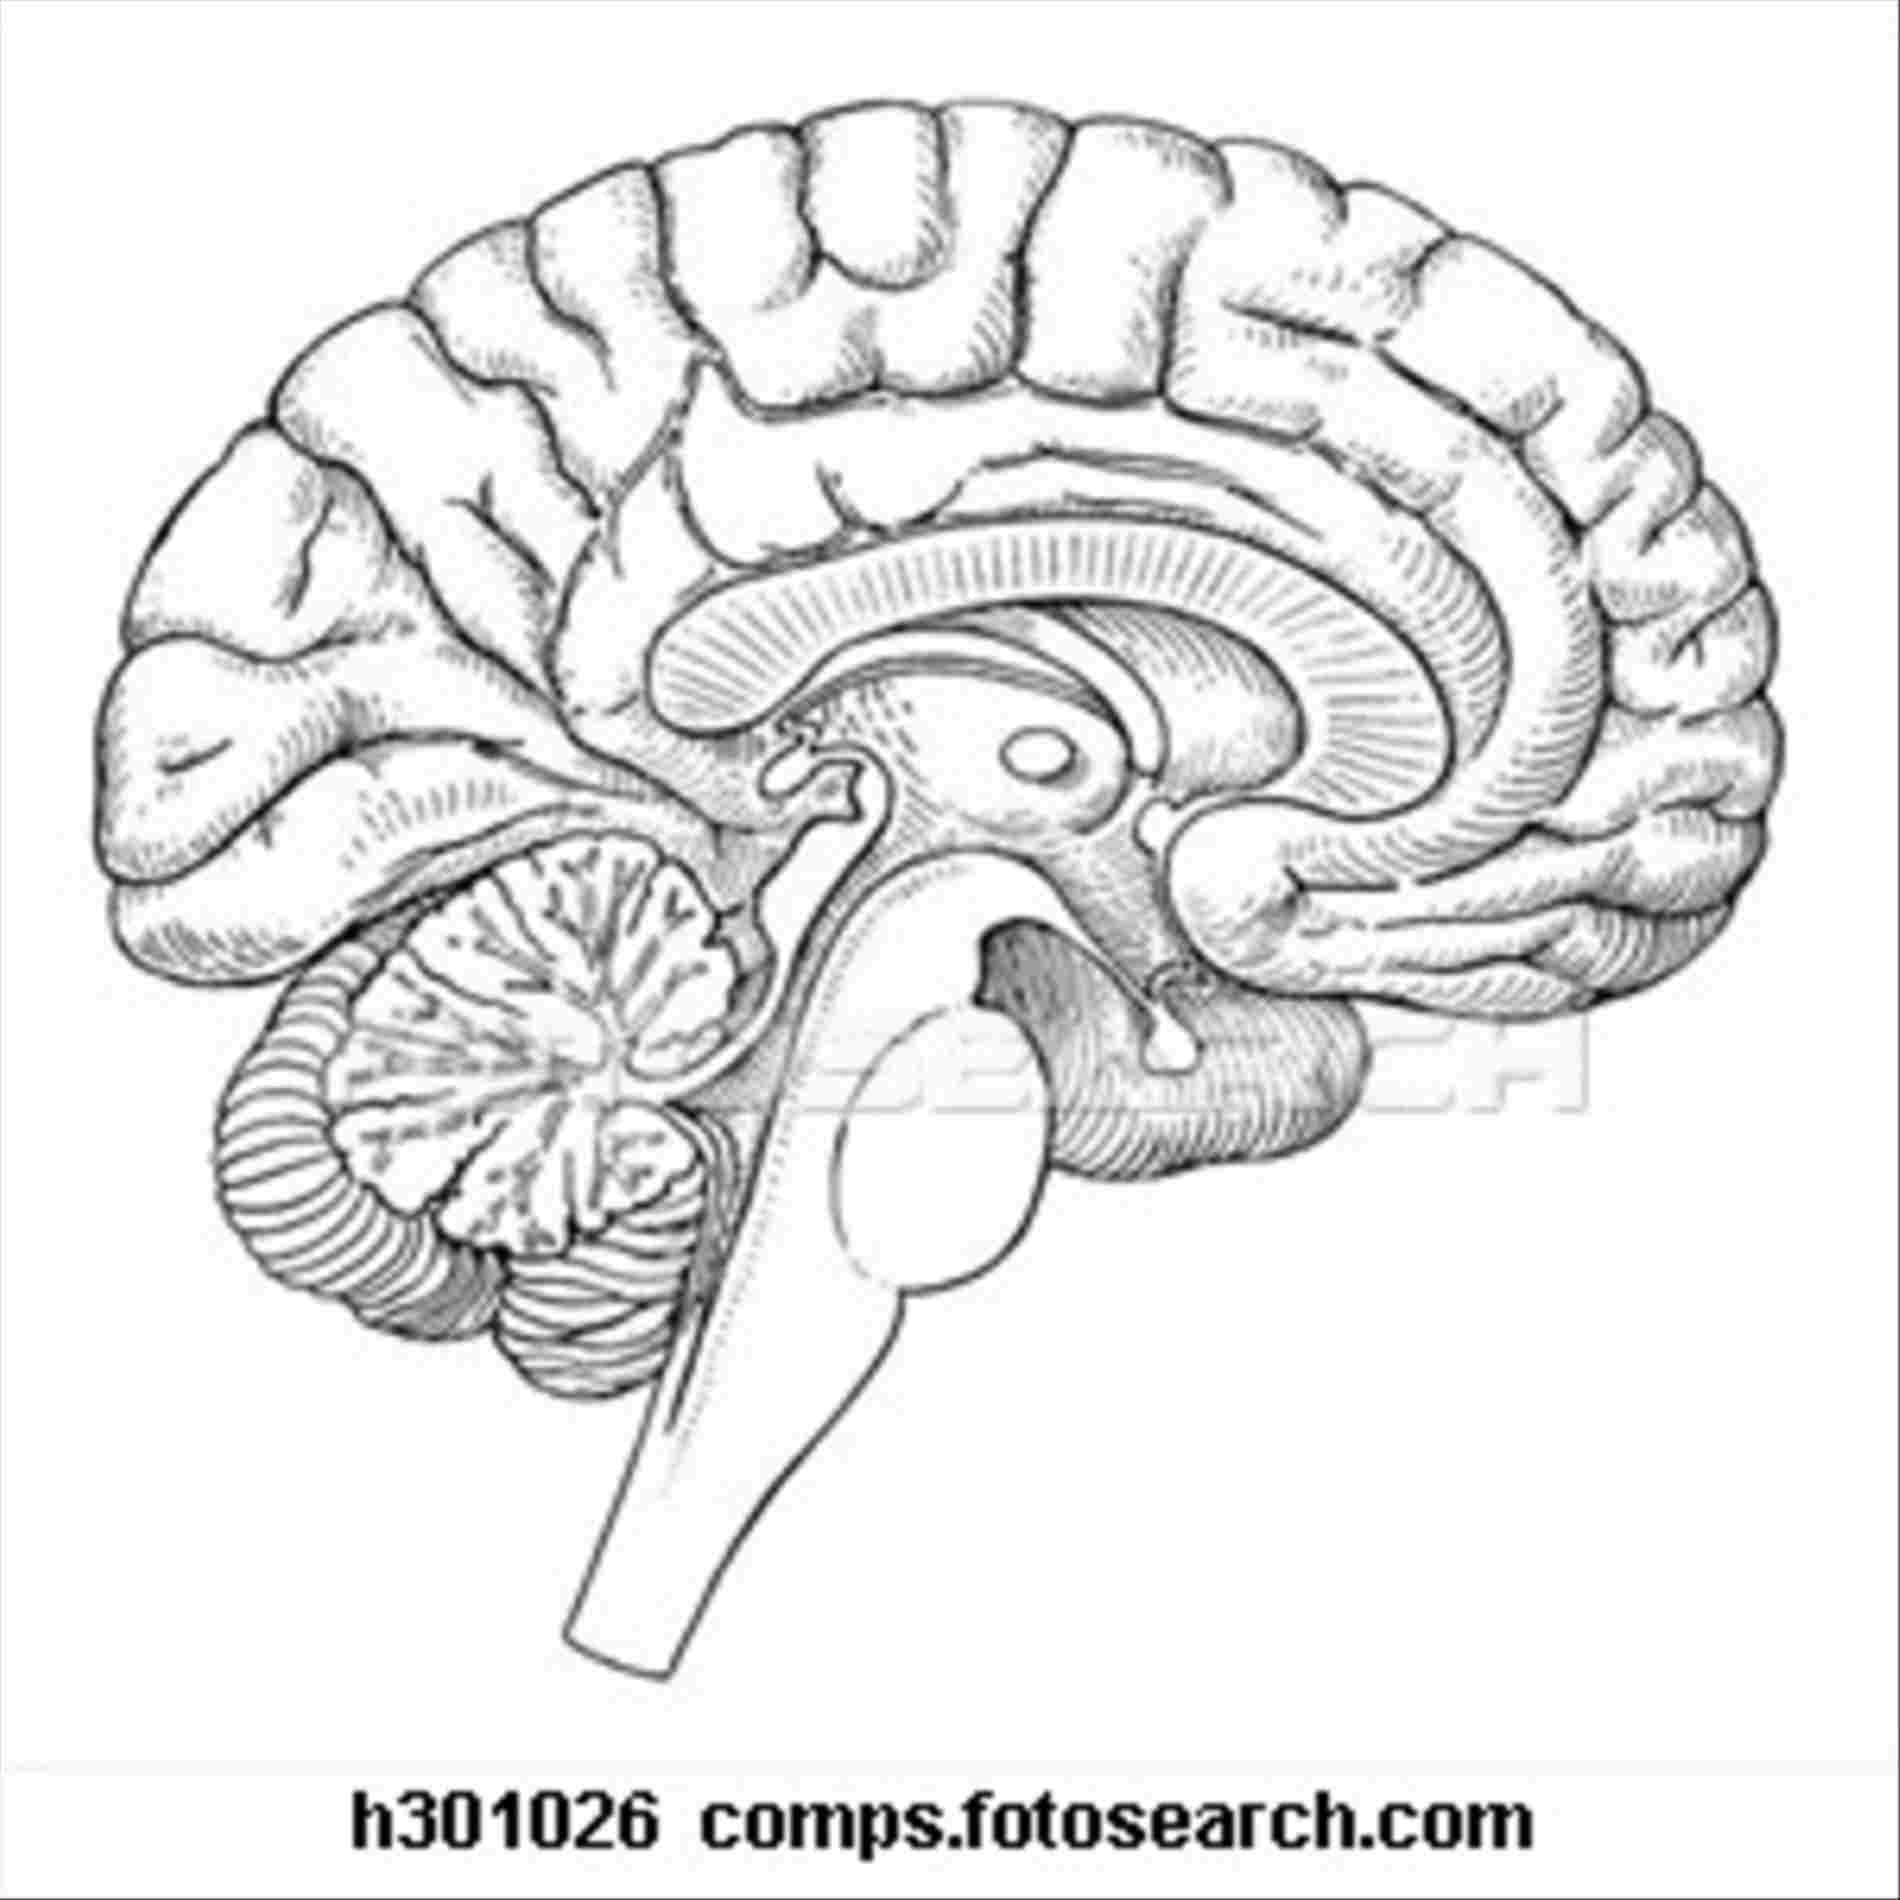 Brain Diagram Labeled Brain Diagram Without Labels Diagram Of Anatomy